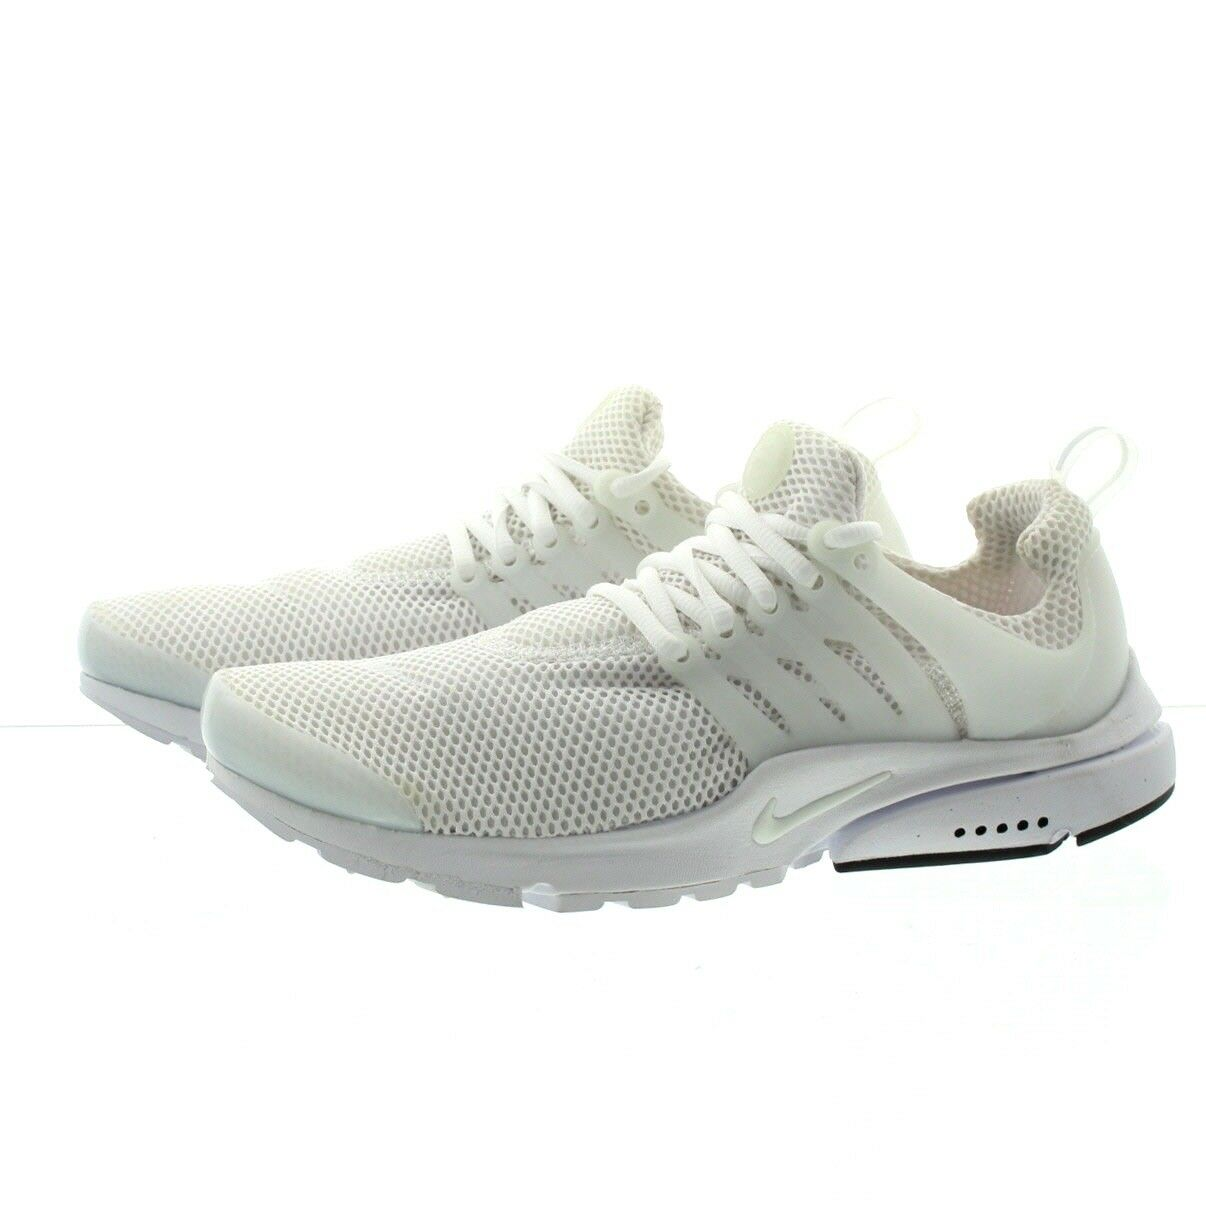 Nike 848132 Mens Air Presto Essential Low Top Running Athletic Athletic Athletic shoes Sneakers 93b366